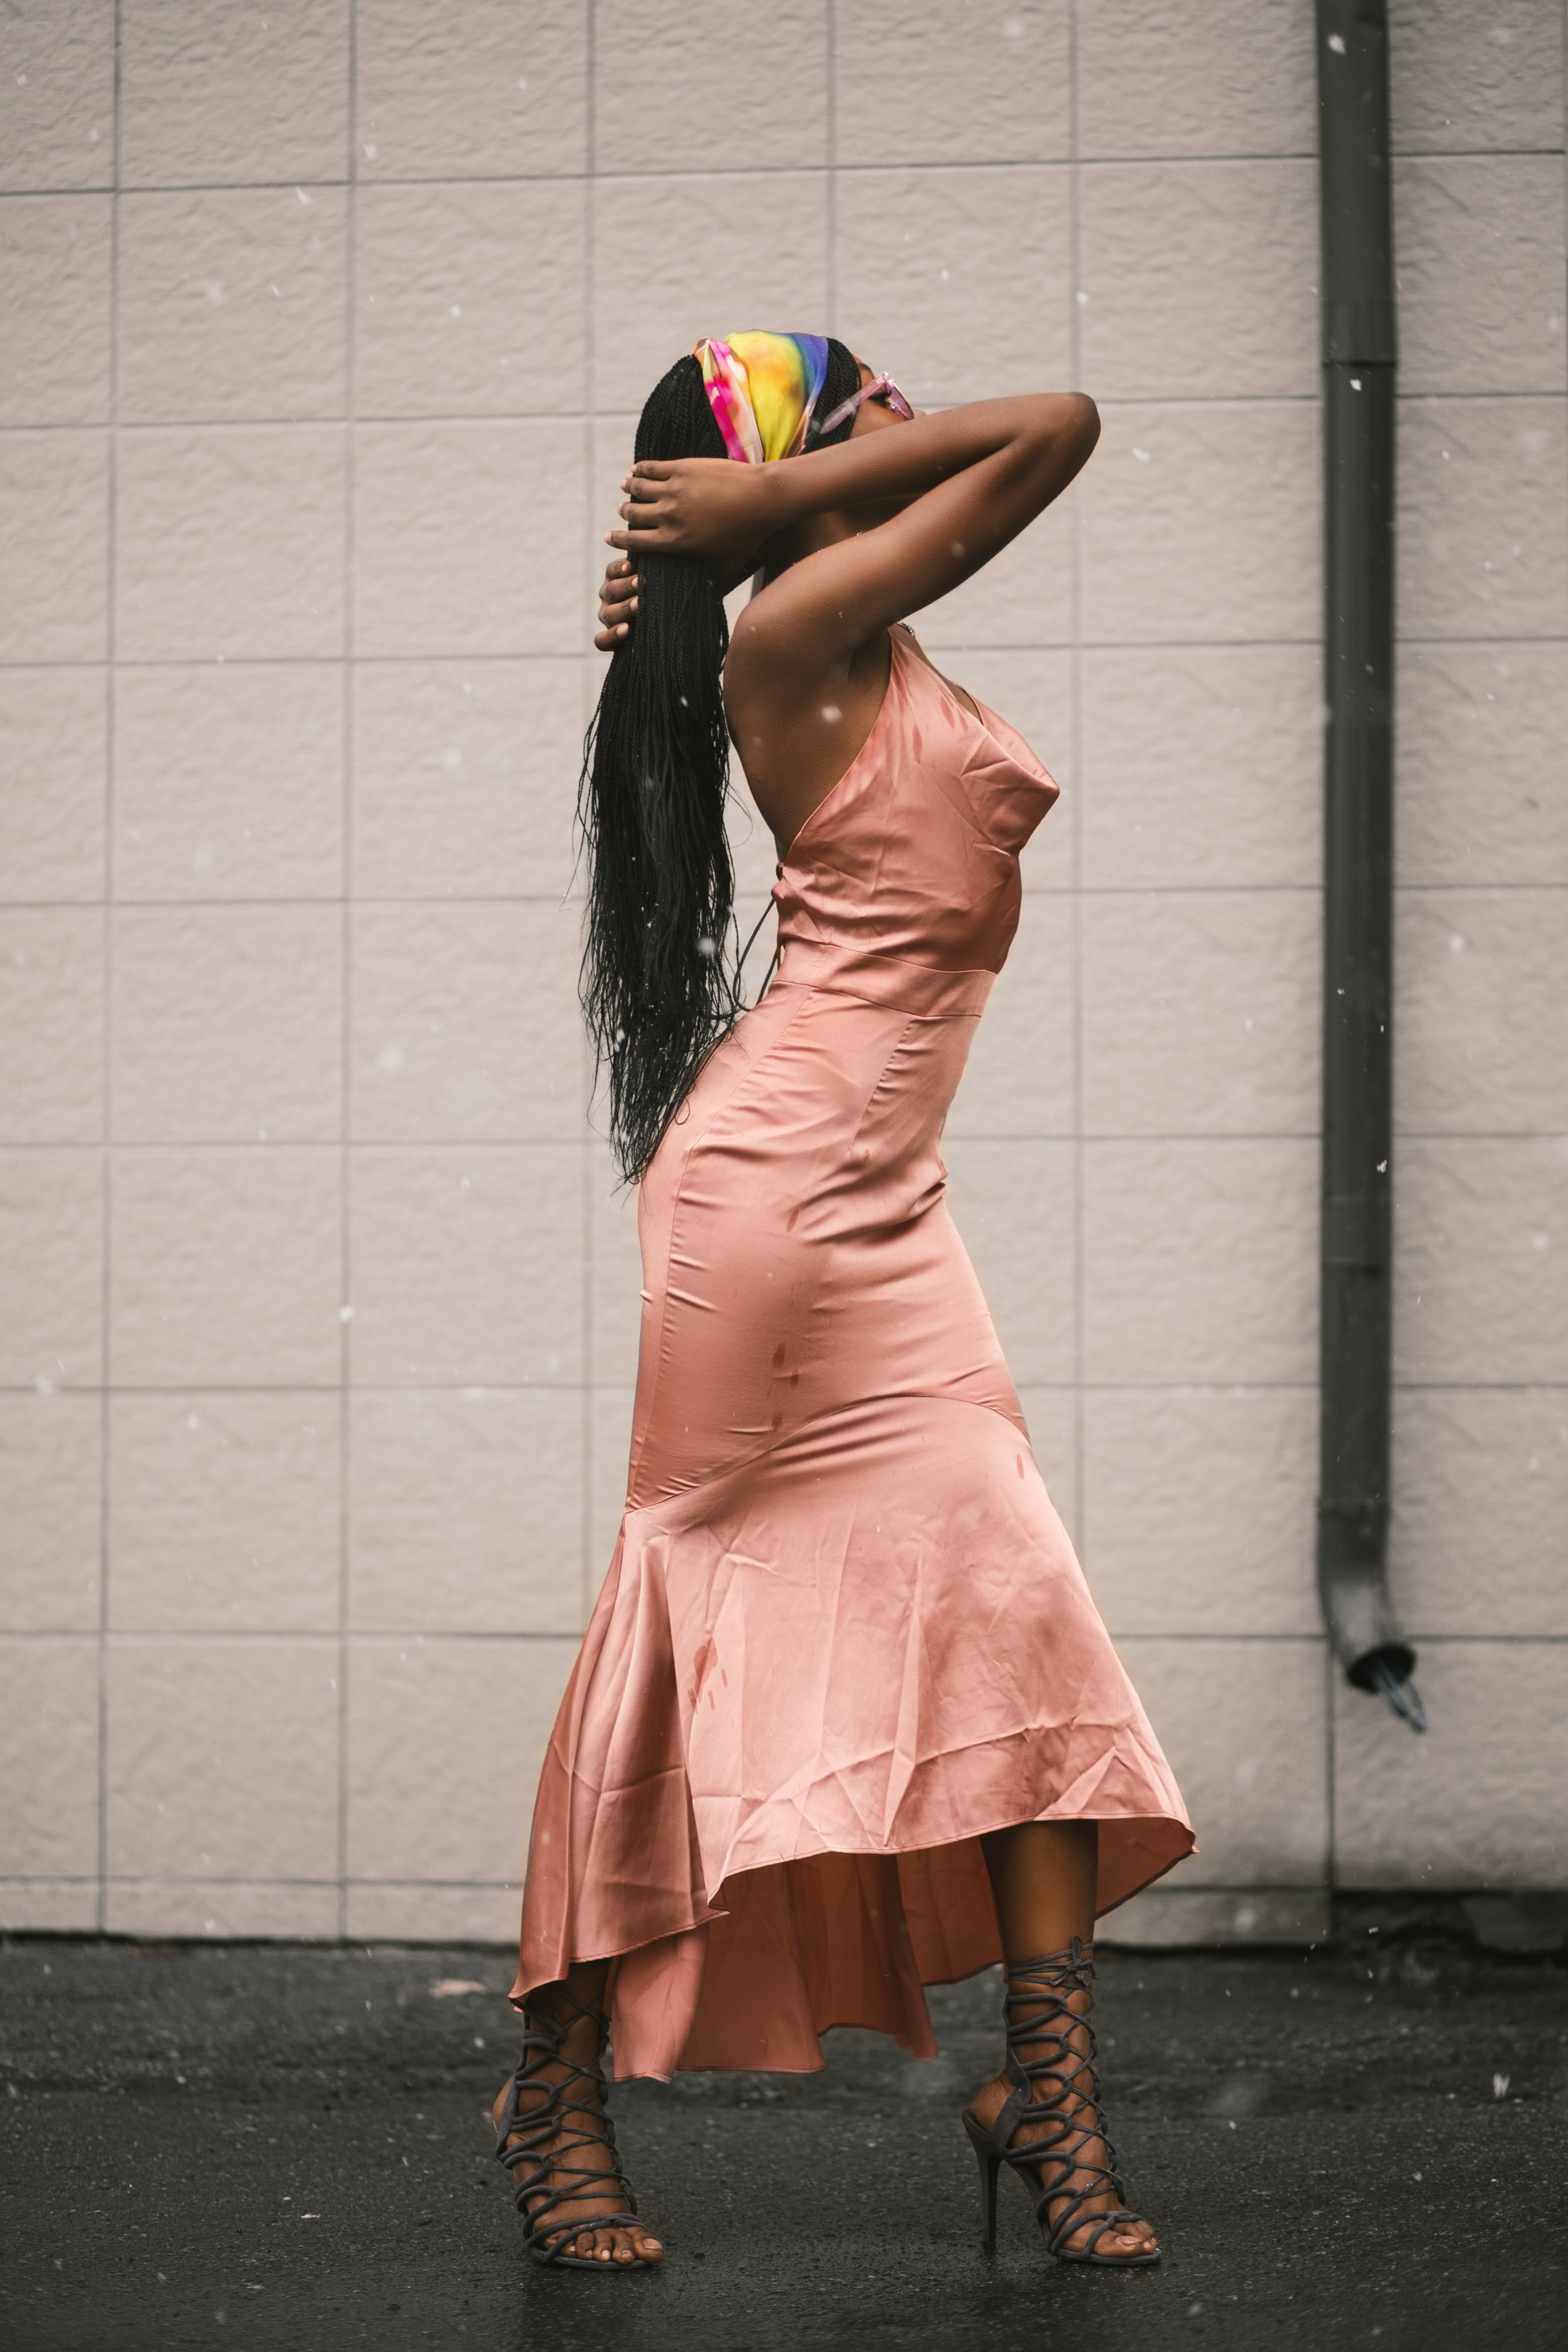 Woman in Pink Dress Hold Hair